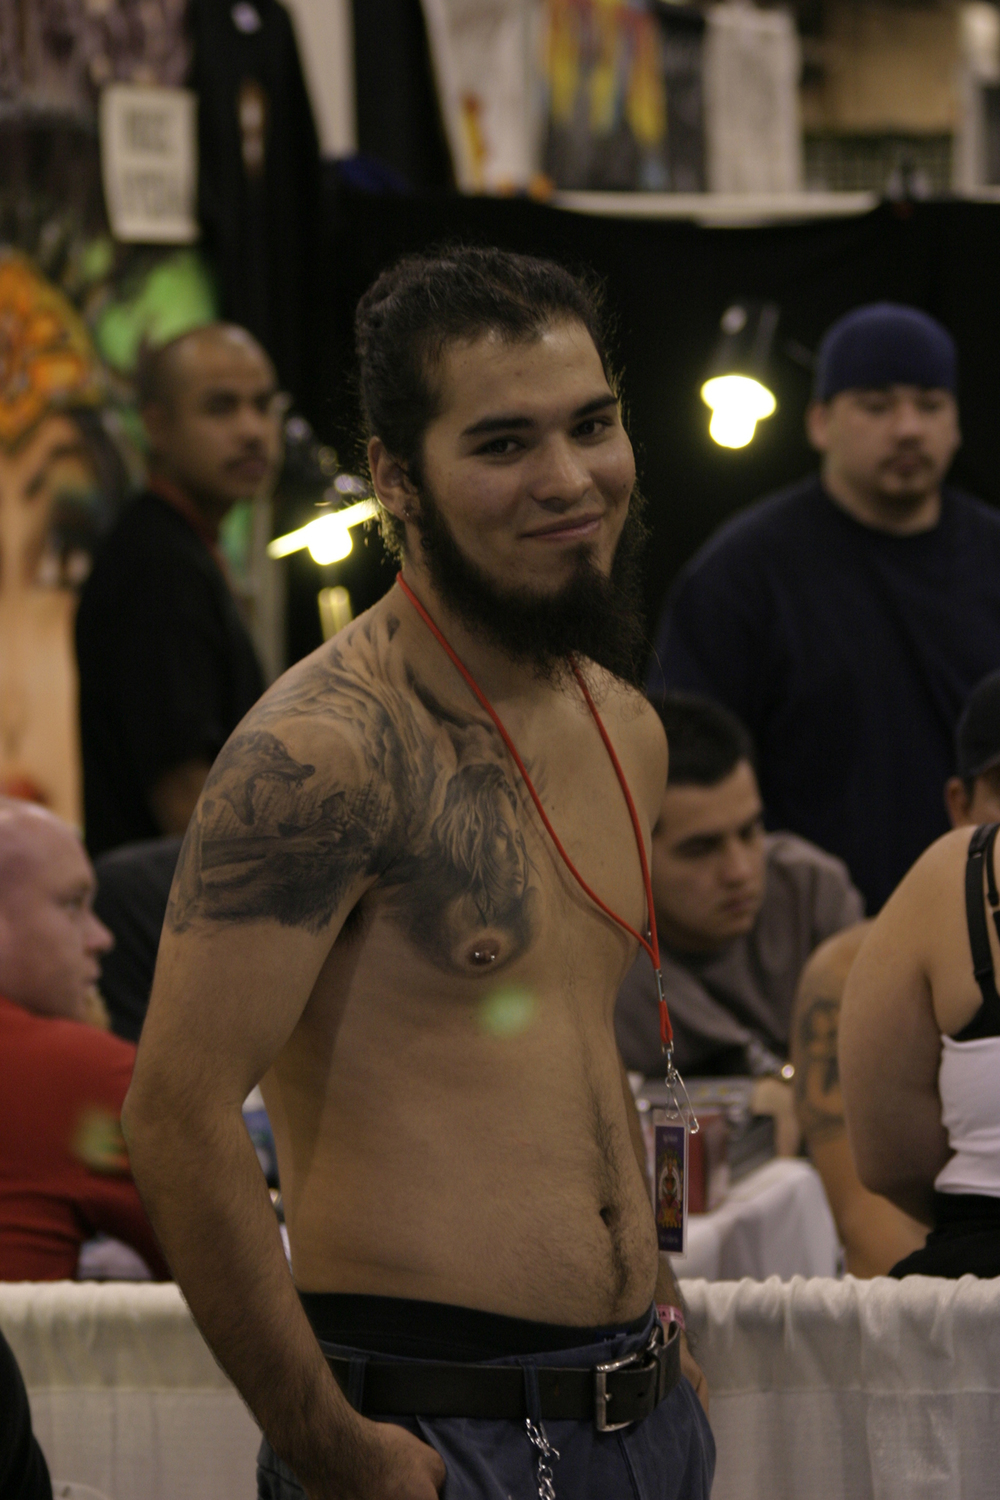 Tattoo_Expo036.JPG